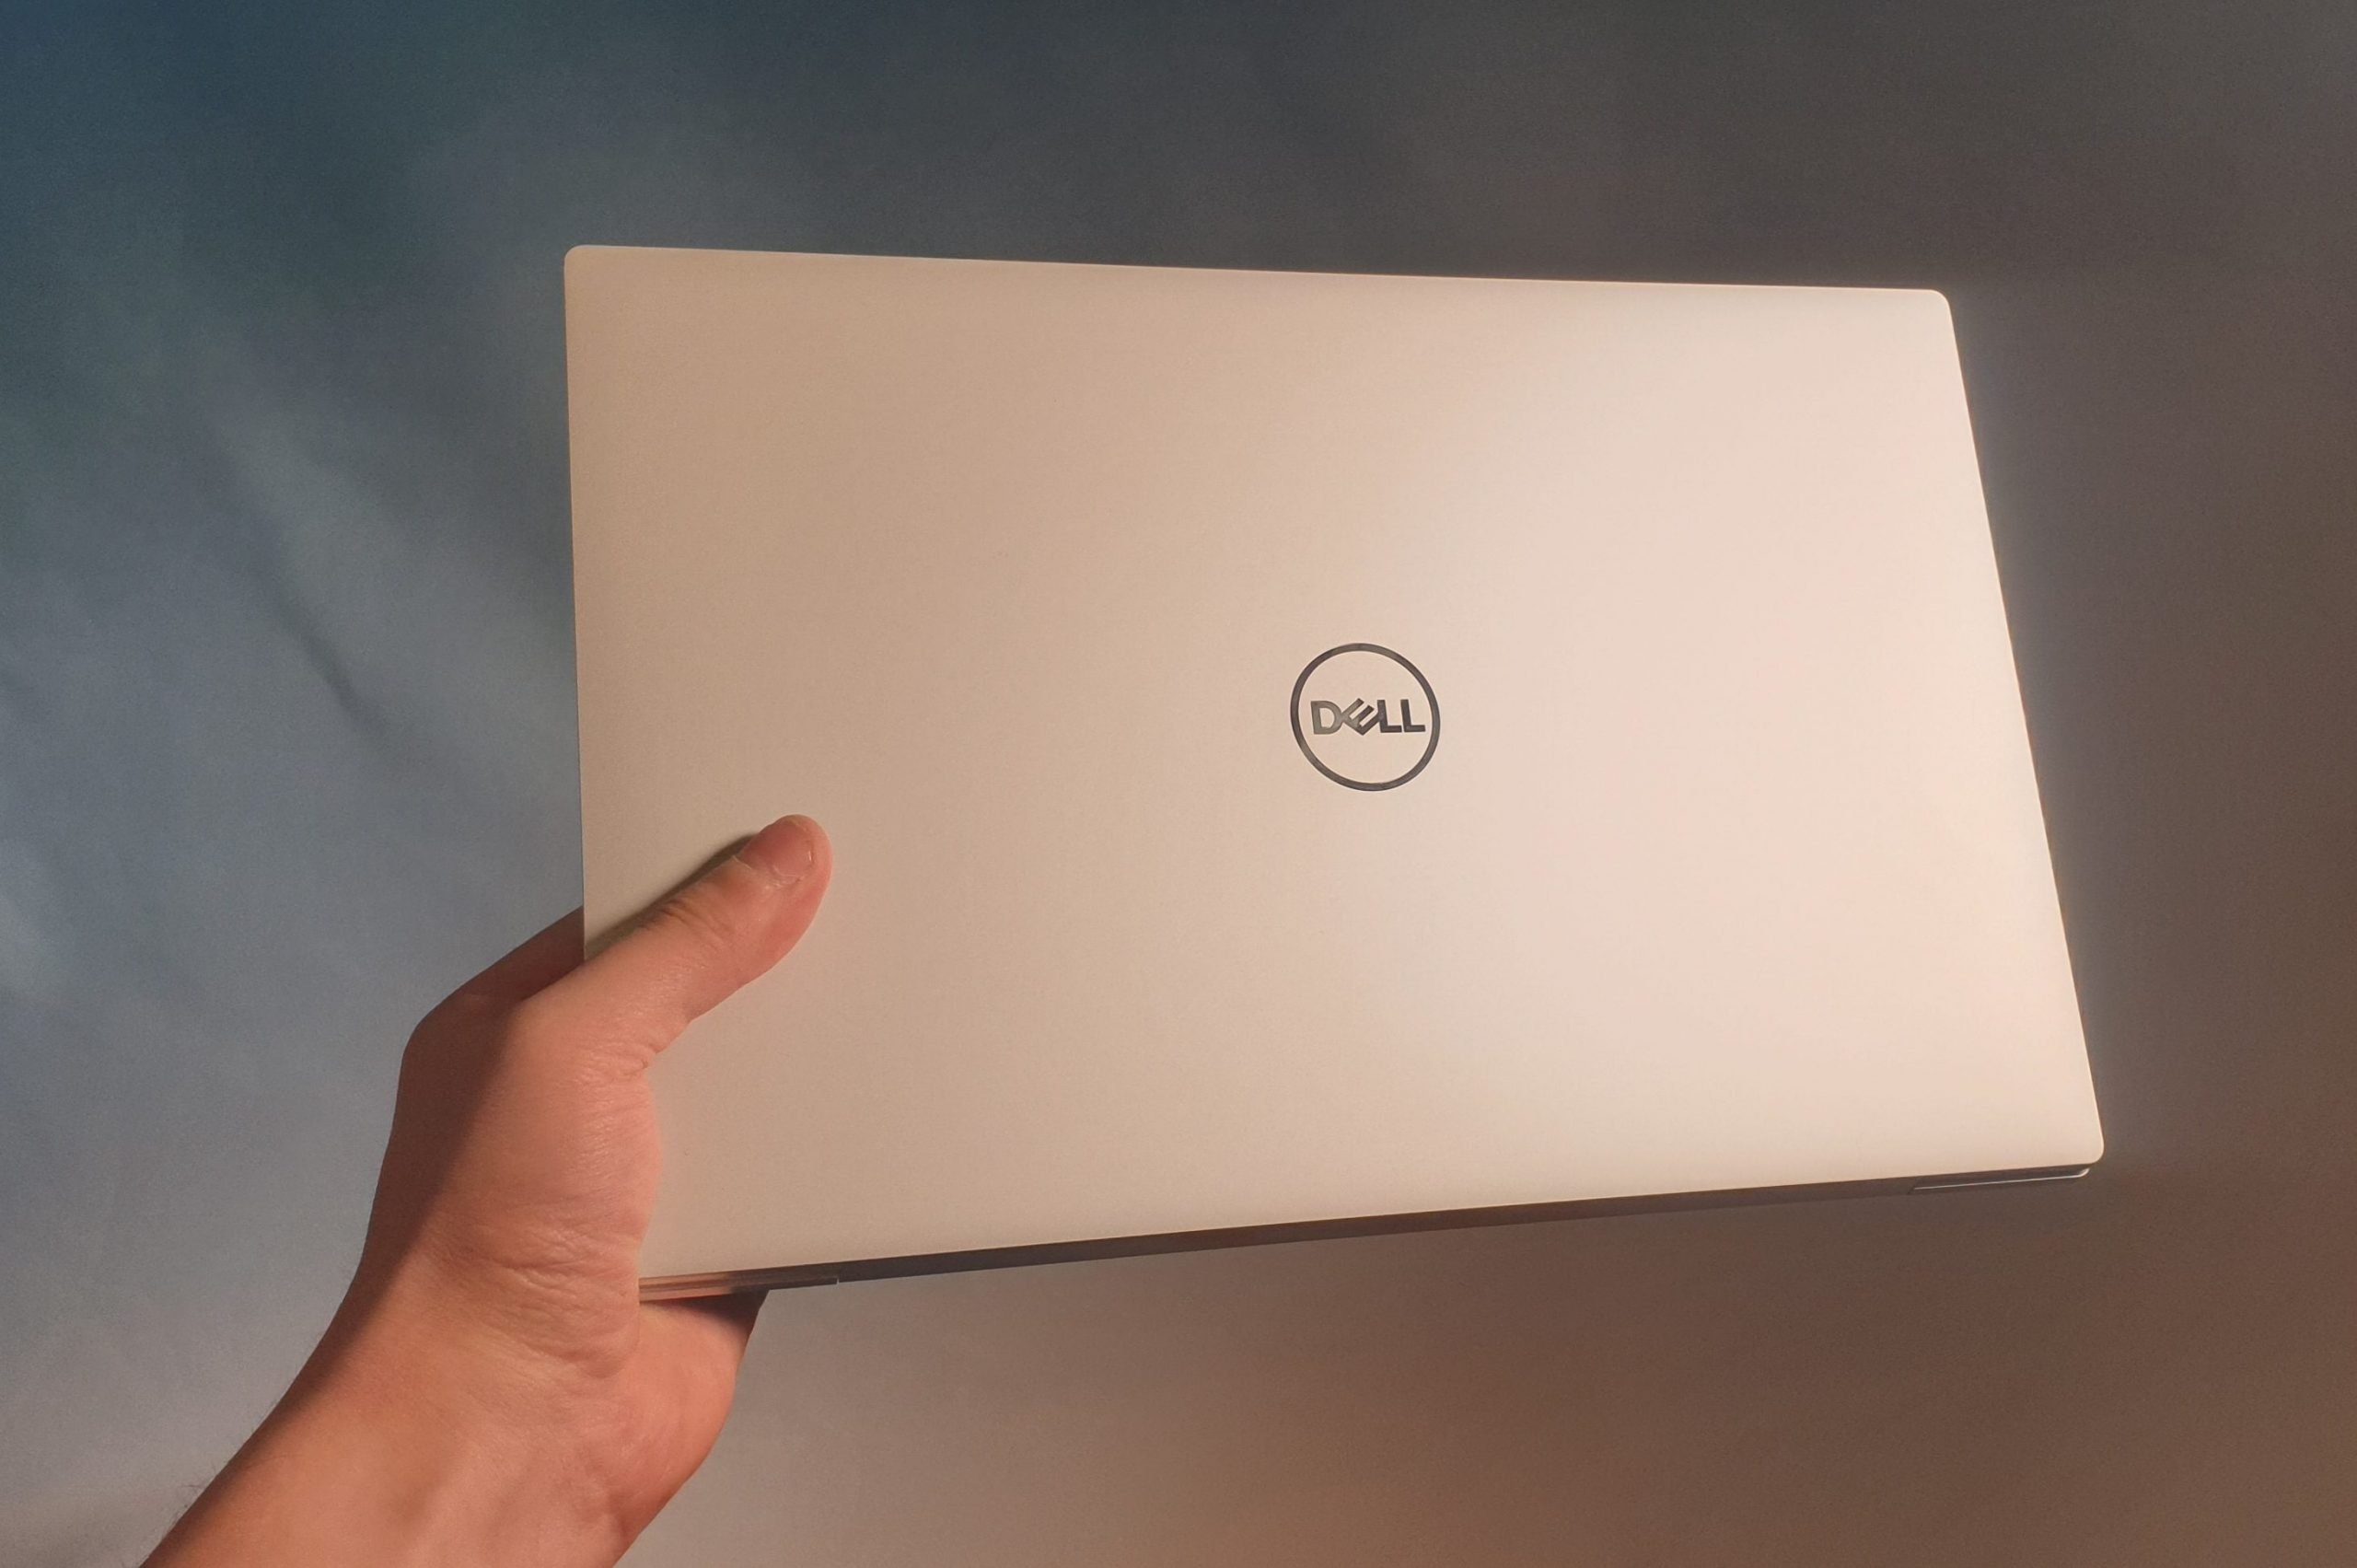 Your Old Dell Computer Has a Huge Security Problem